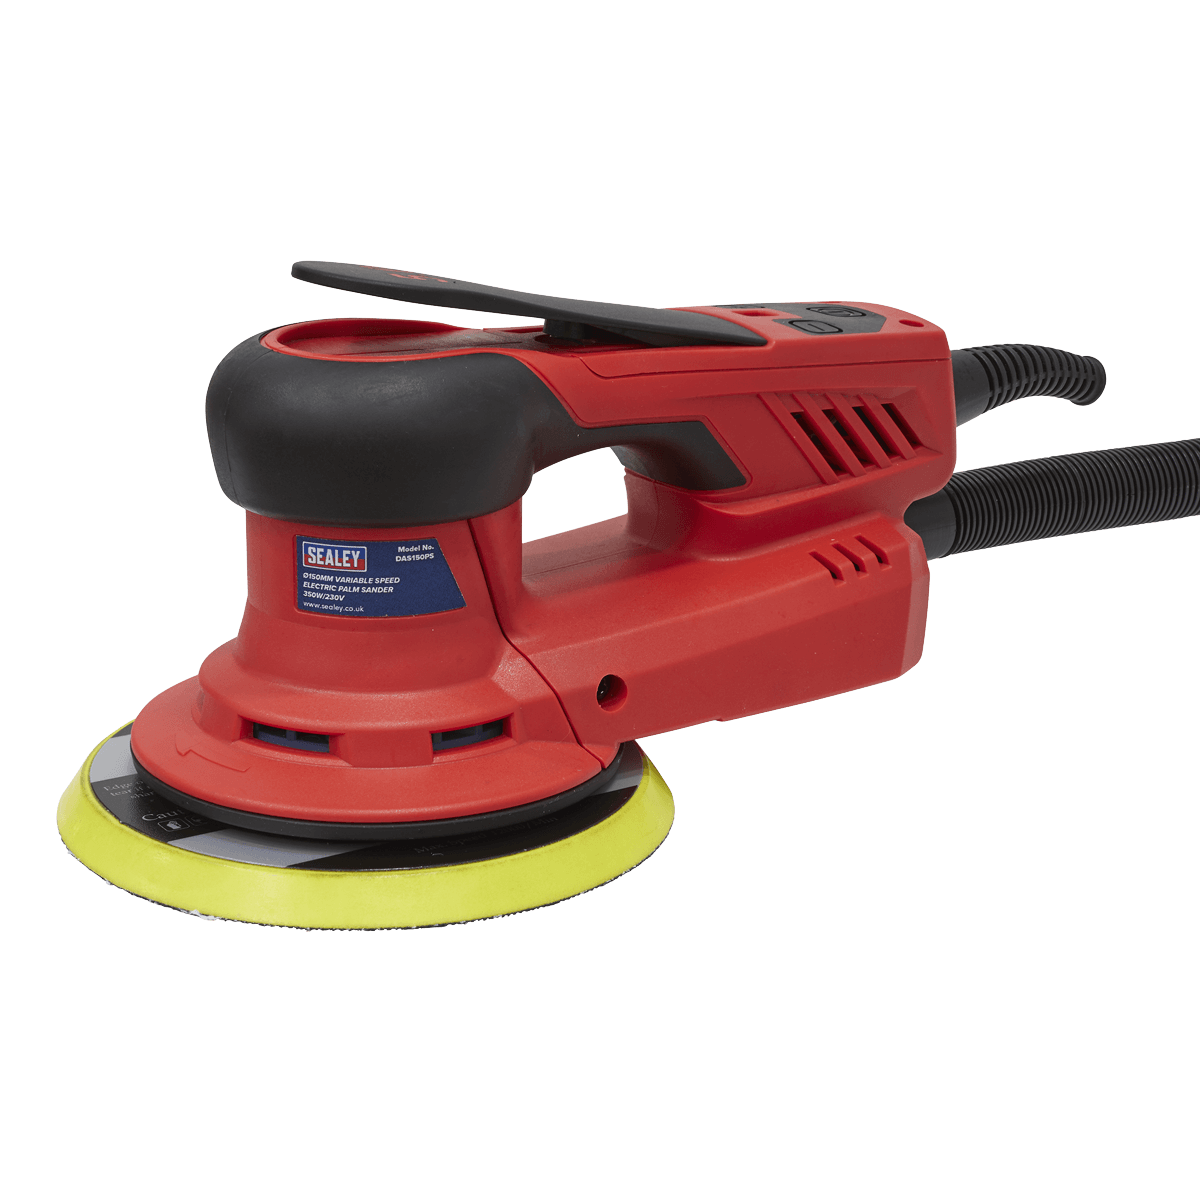 Sealey Variable Speed Electric Palm Sander 350W DAS150PS | Supplied with dust-free Ø150mm backing pad, four sanding discs and dust extraction hose. | toolforce.ie